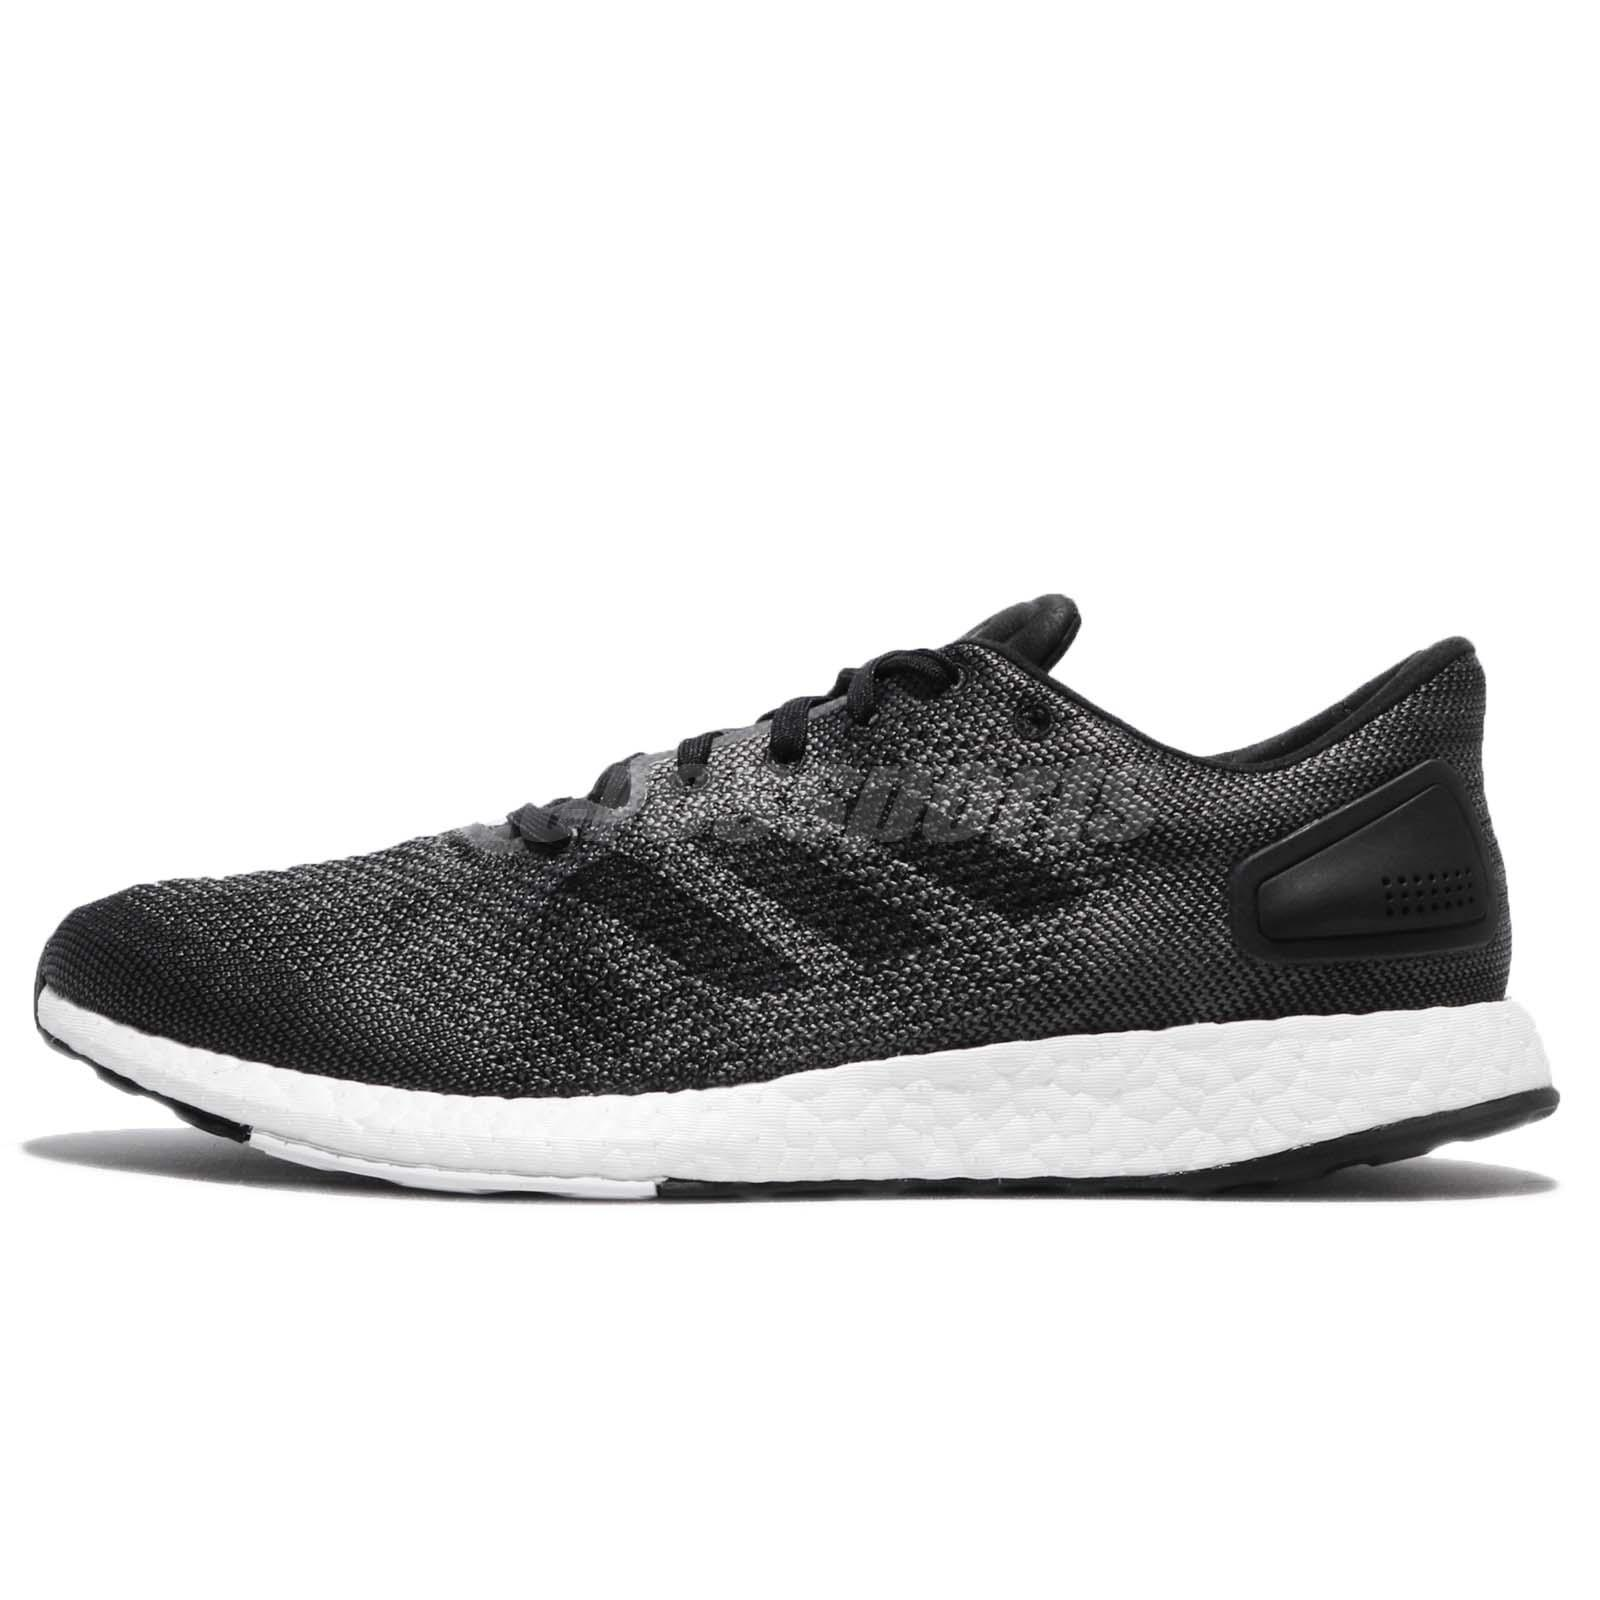 555caead5c7d6 adidas PureBOOST DPR Solid Grey Black Men Running Shoes Sneakers Trainers  BB6291